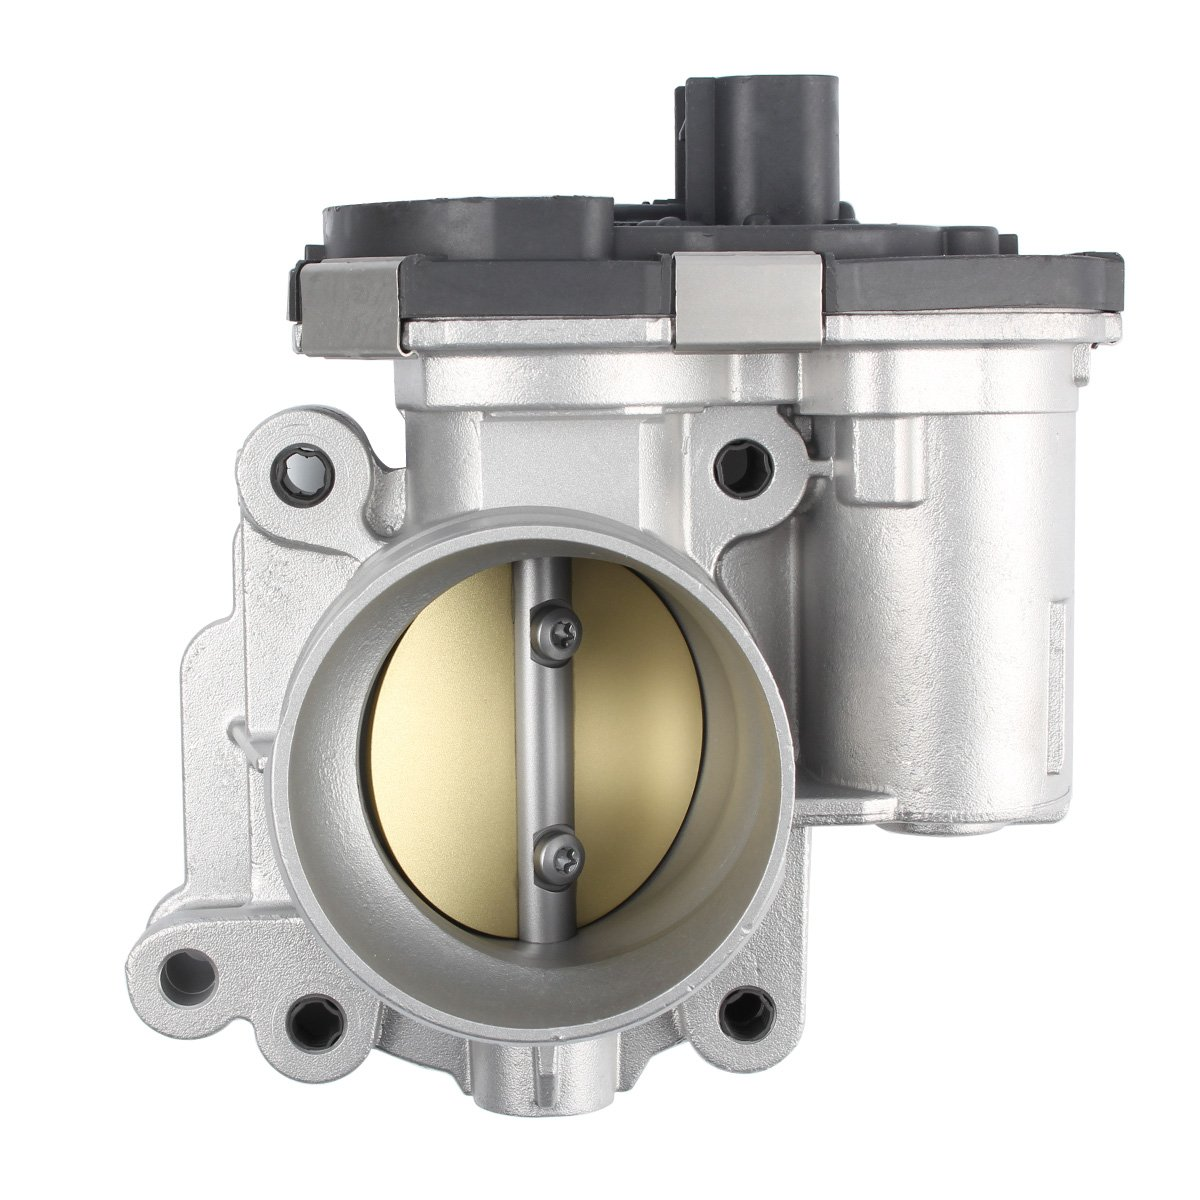 Goodeal Throttle Body For Chevy Pontiac Saturn 22l 08 Hhr Fuel Filter Cobalt G5 Malibu Ion Automotive